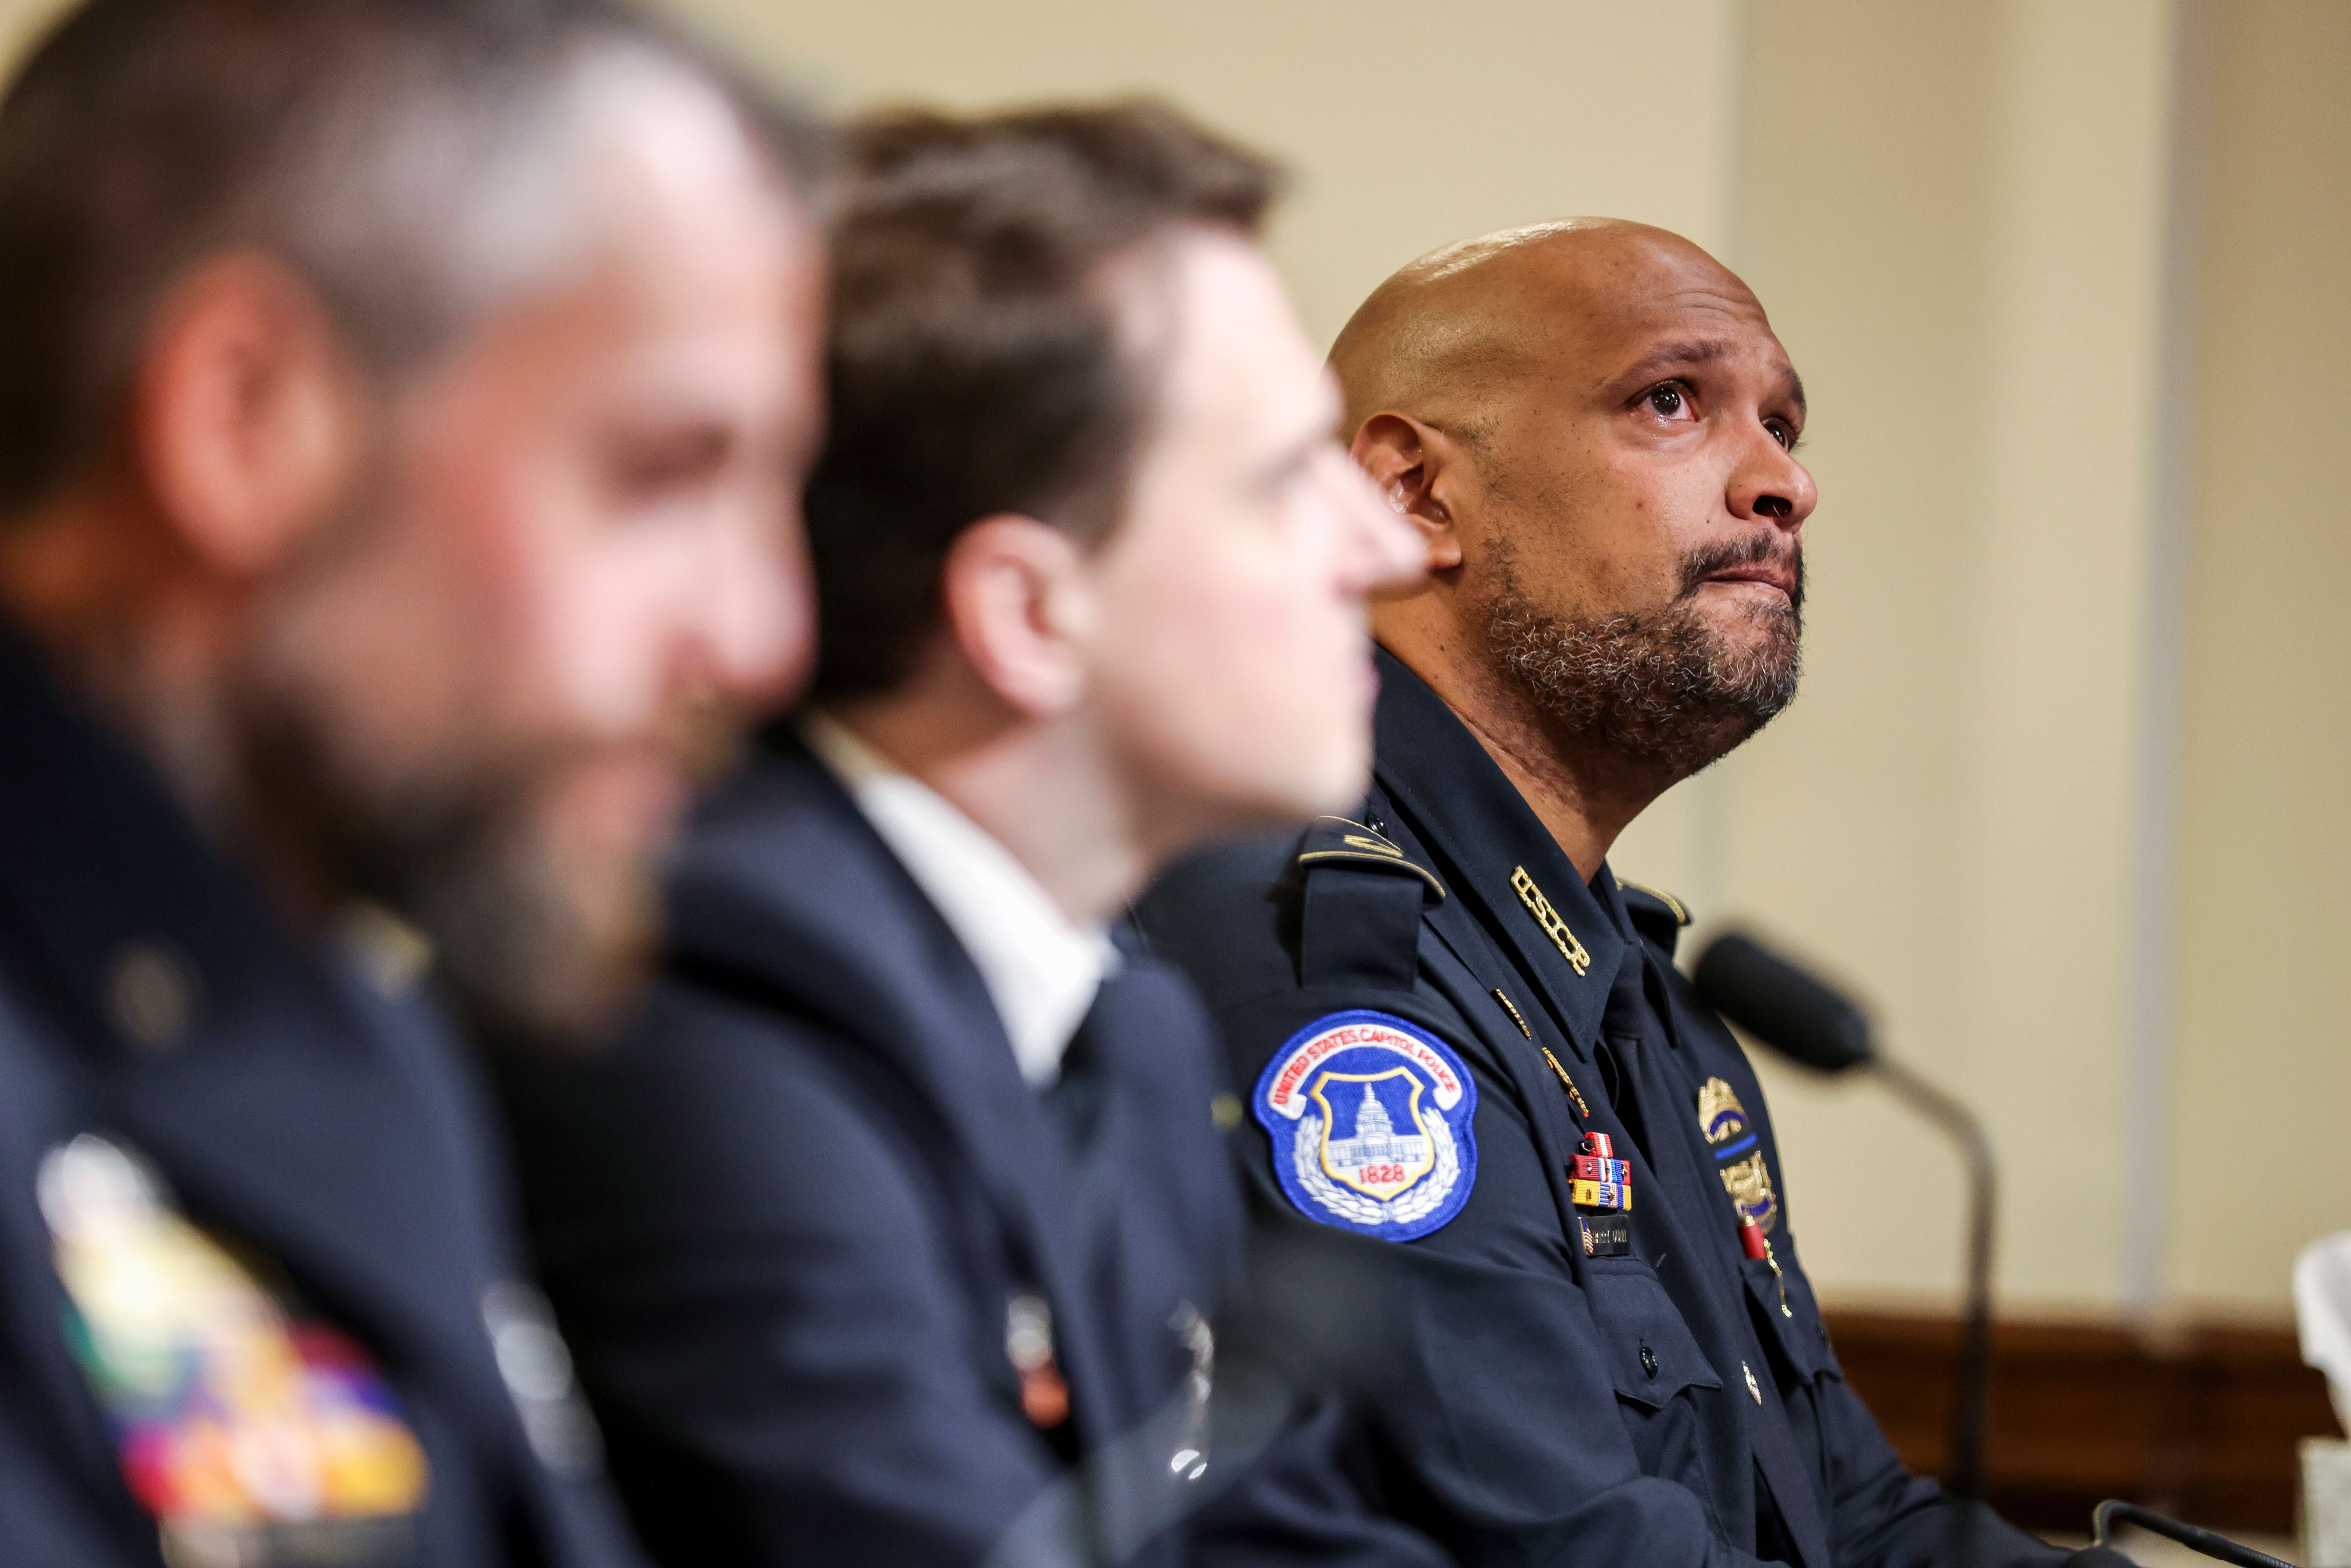 Capitol Police Officer Harry Dunn, at right, watches a video during the House select committee hearing on the January 6 attack on Capitol Hill on Tuesday, July 27.